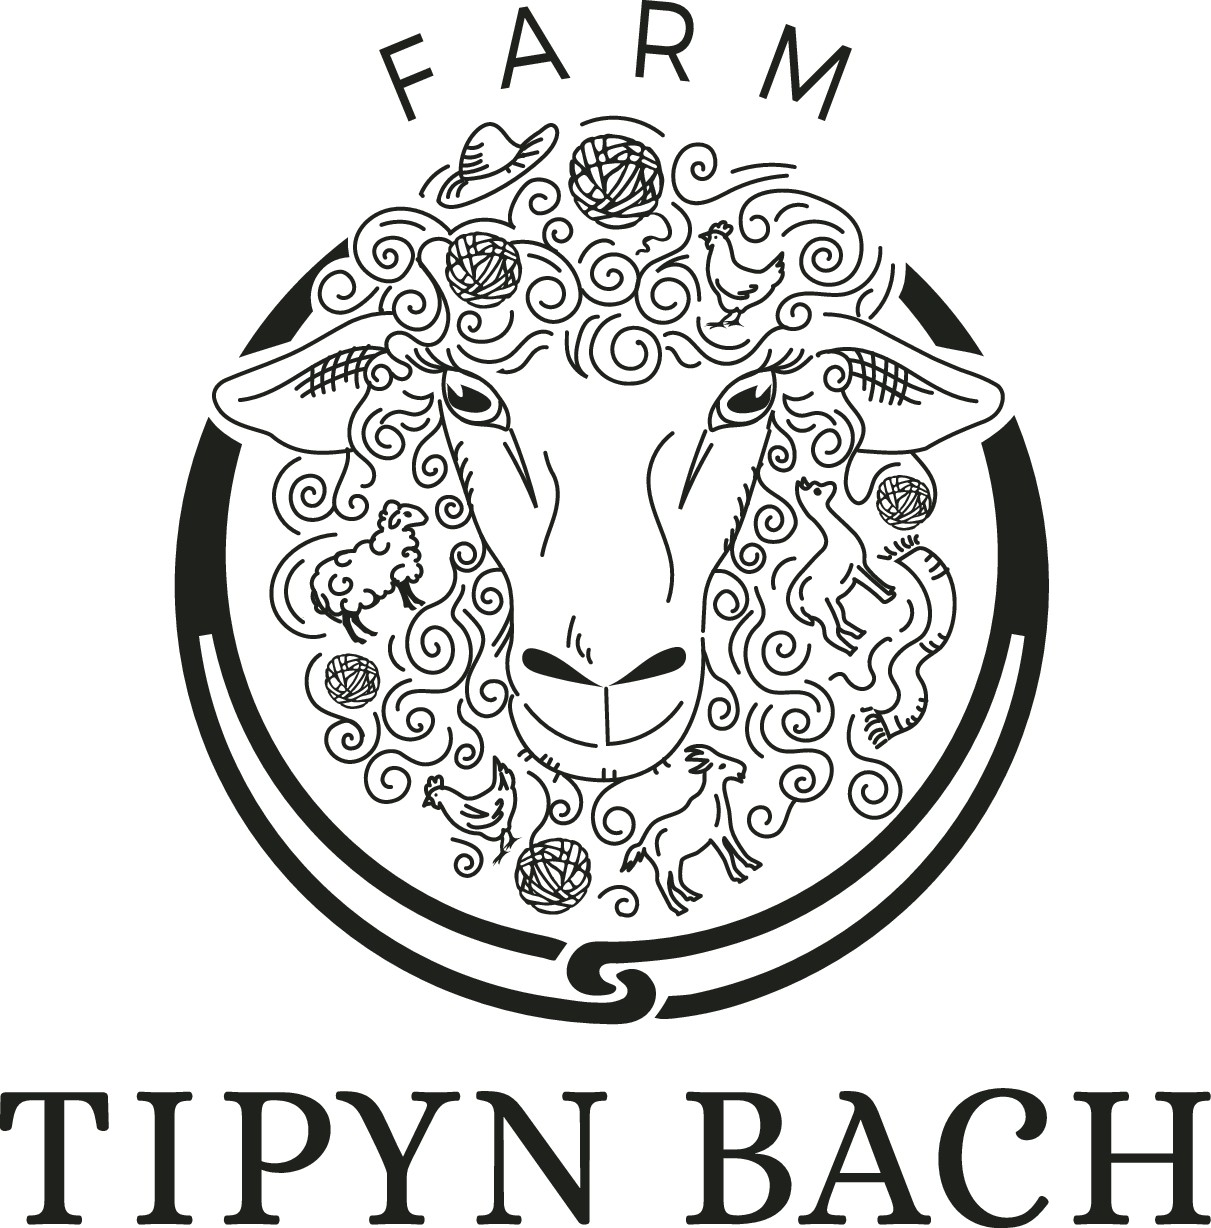 Business cards and labels for farm.  Products are yarn and hand made woolen goods